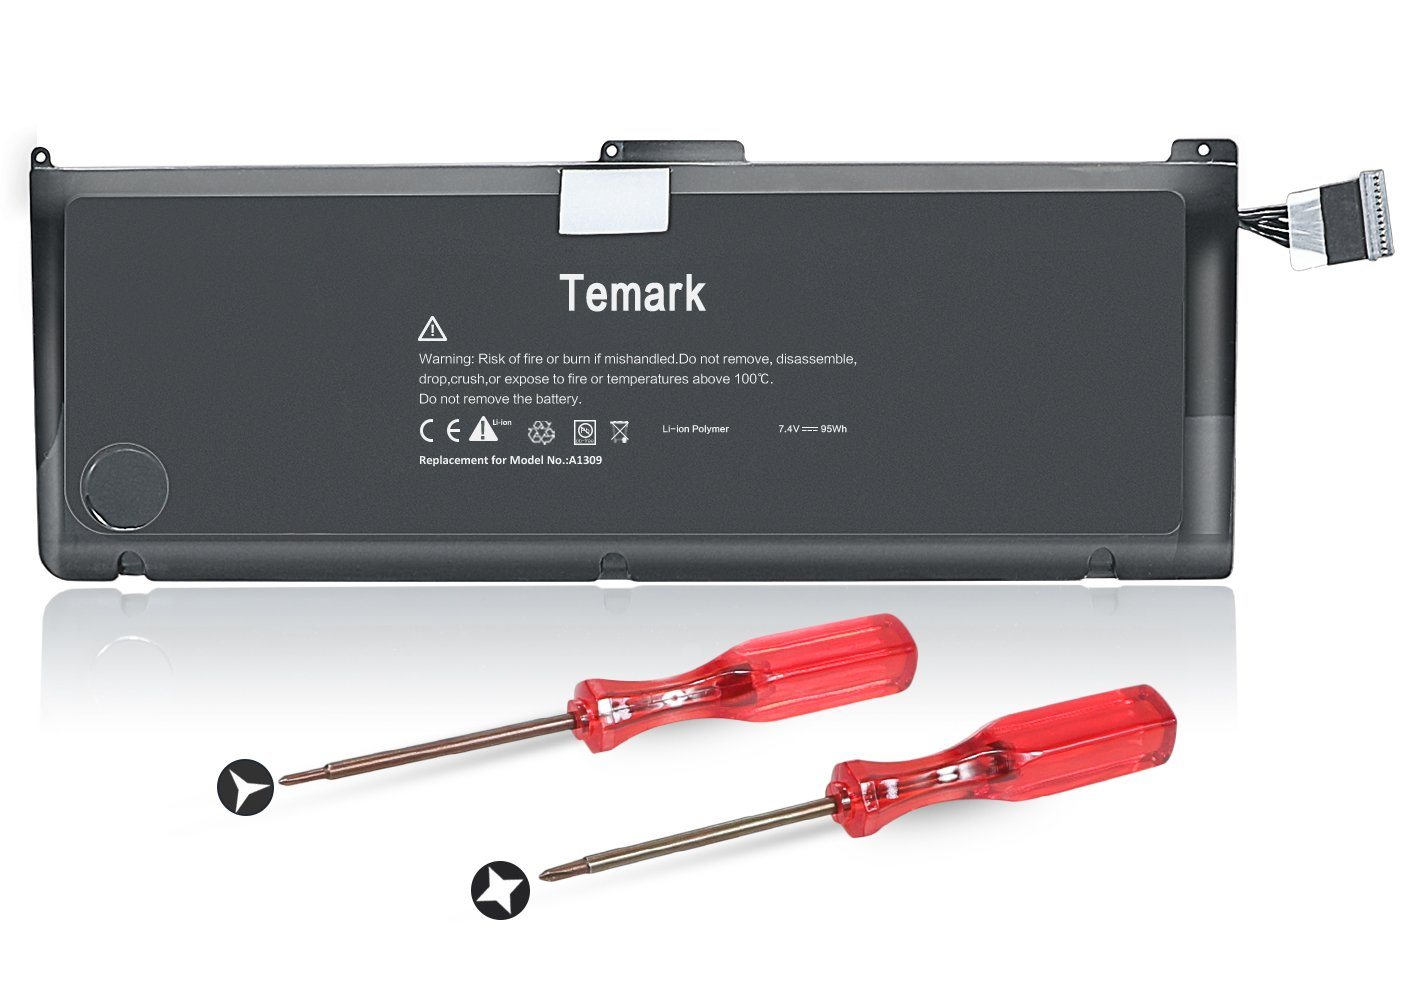 Temark New A1309 Laptop Battery for MacBook Pro 17'' A1297 (Only fit Early 2009 Mid-2009 Mid-2010 Version), fit MC226/A MC226CH/A MC226J/A 020-6313-C 661-5037-A